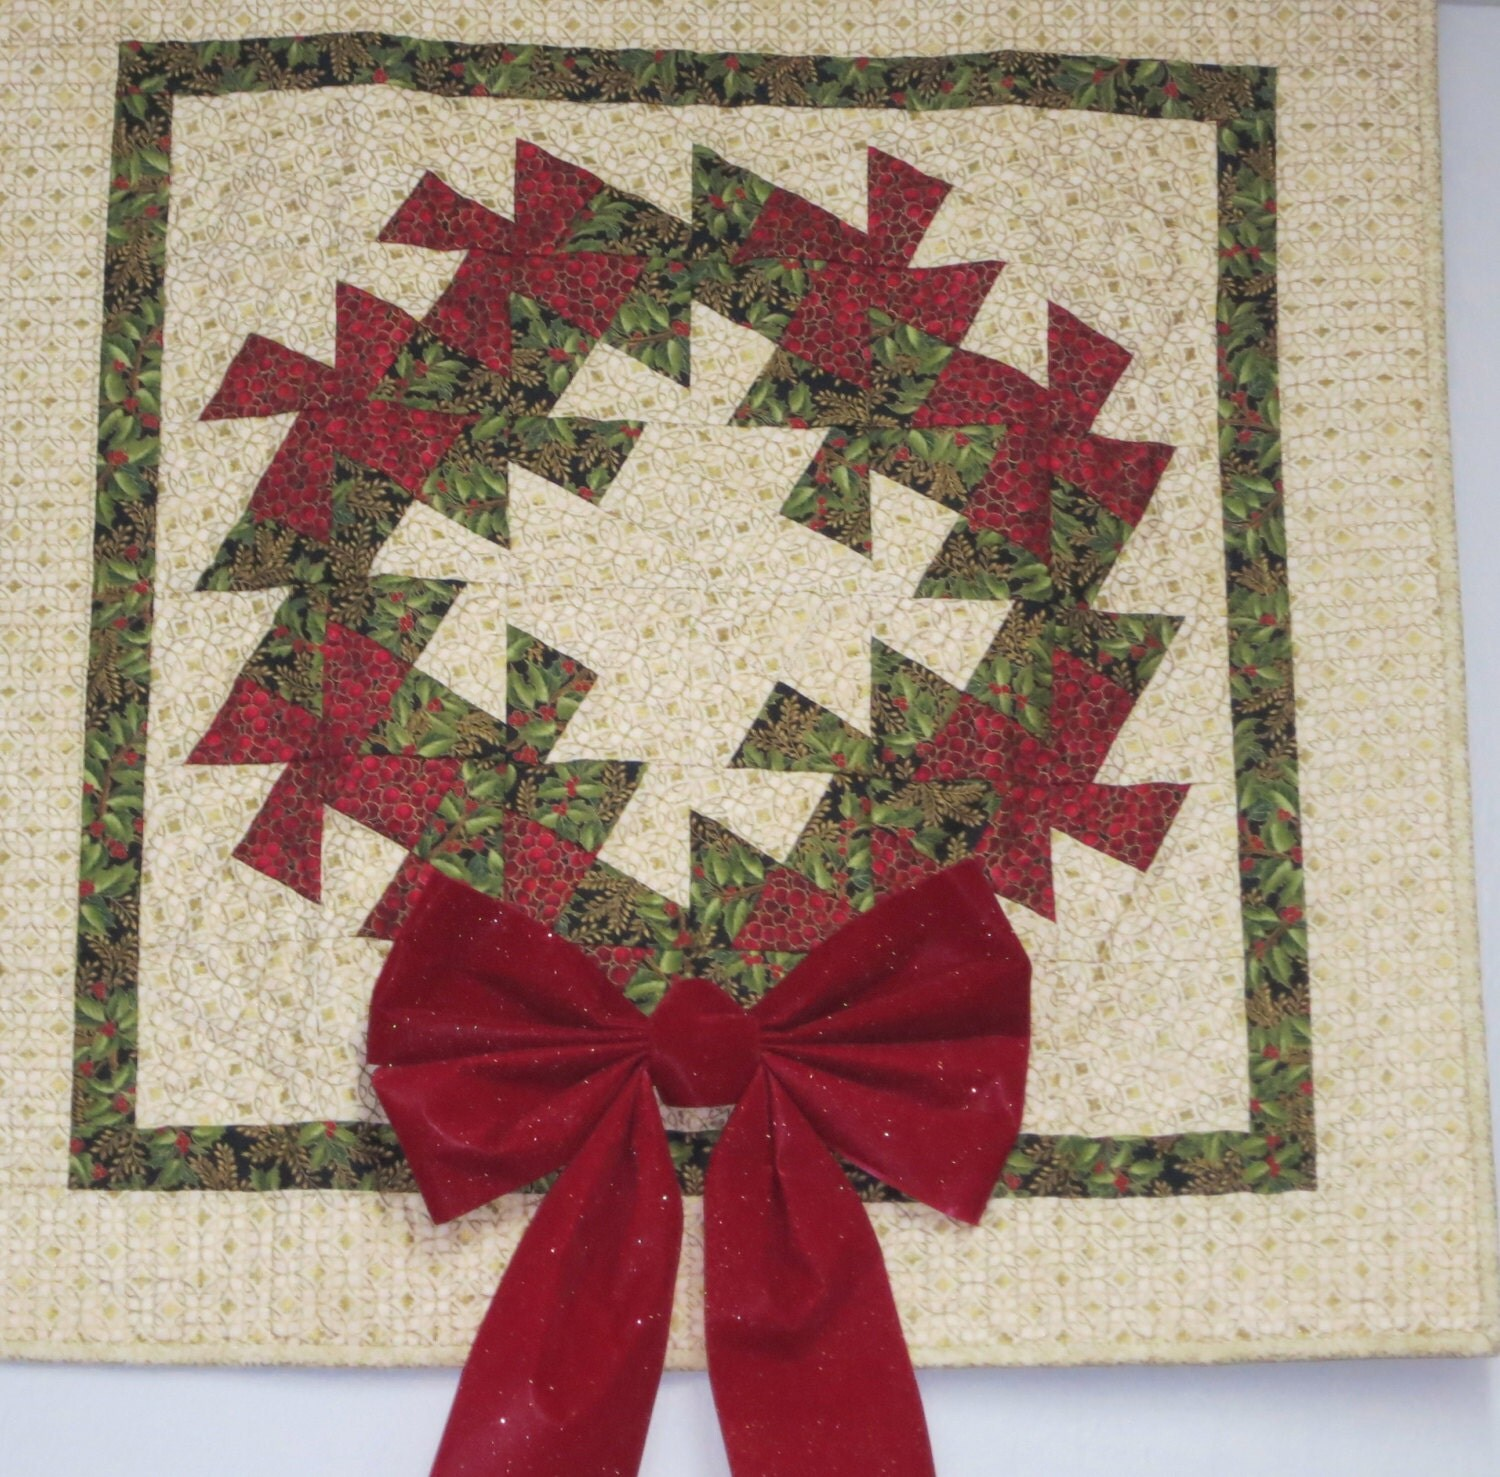 Twisted Rag Quilt Pattern Free : Quilted Christmas Wreath Wall Hanging Quilt Twisted Wreath